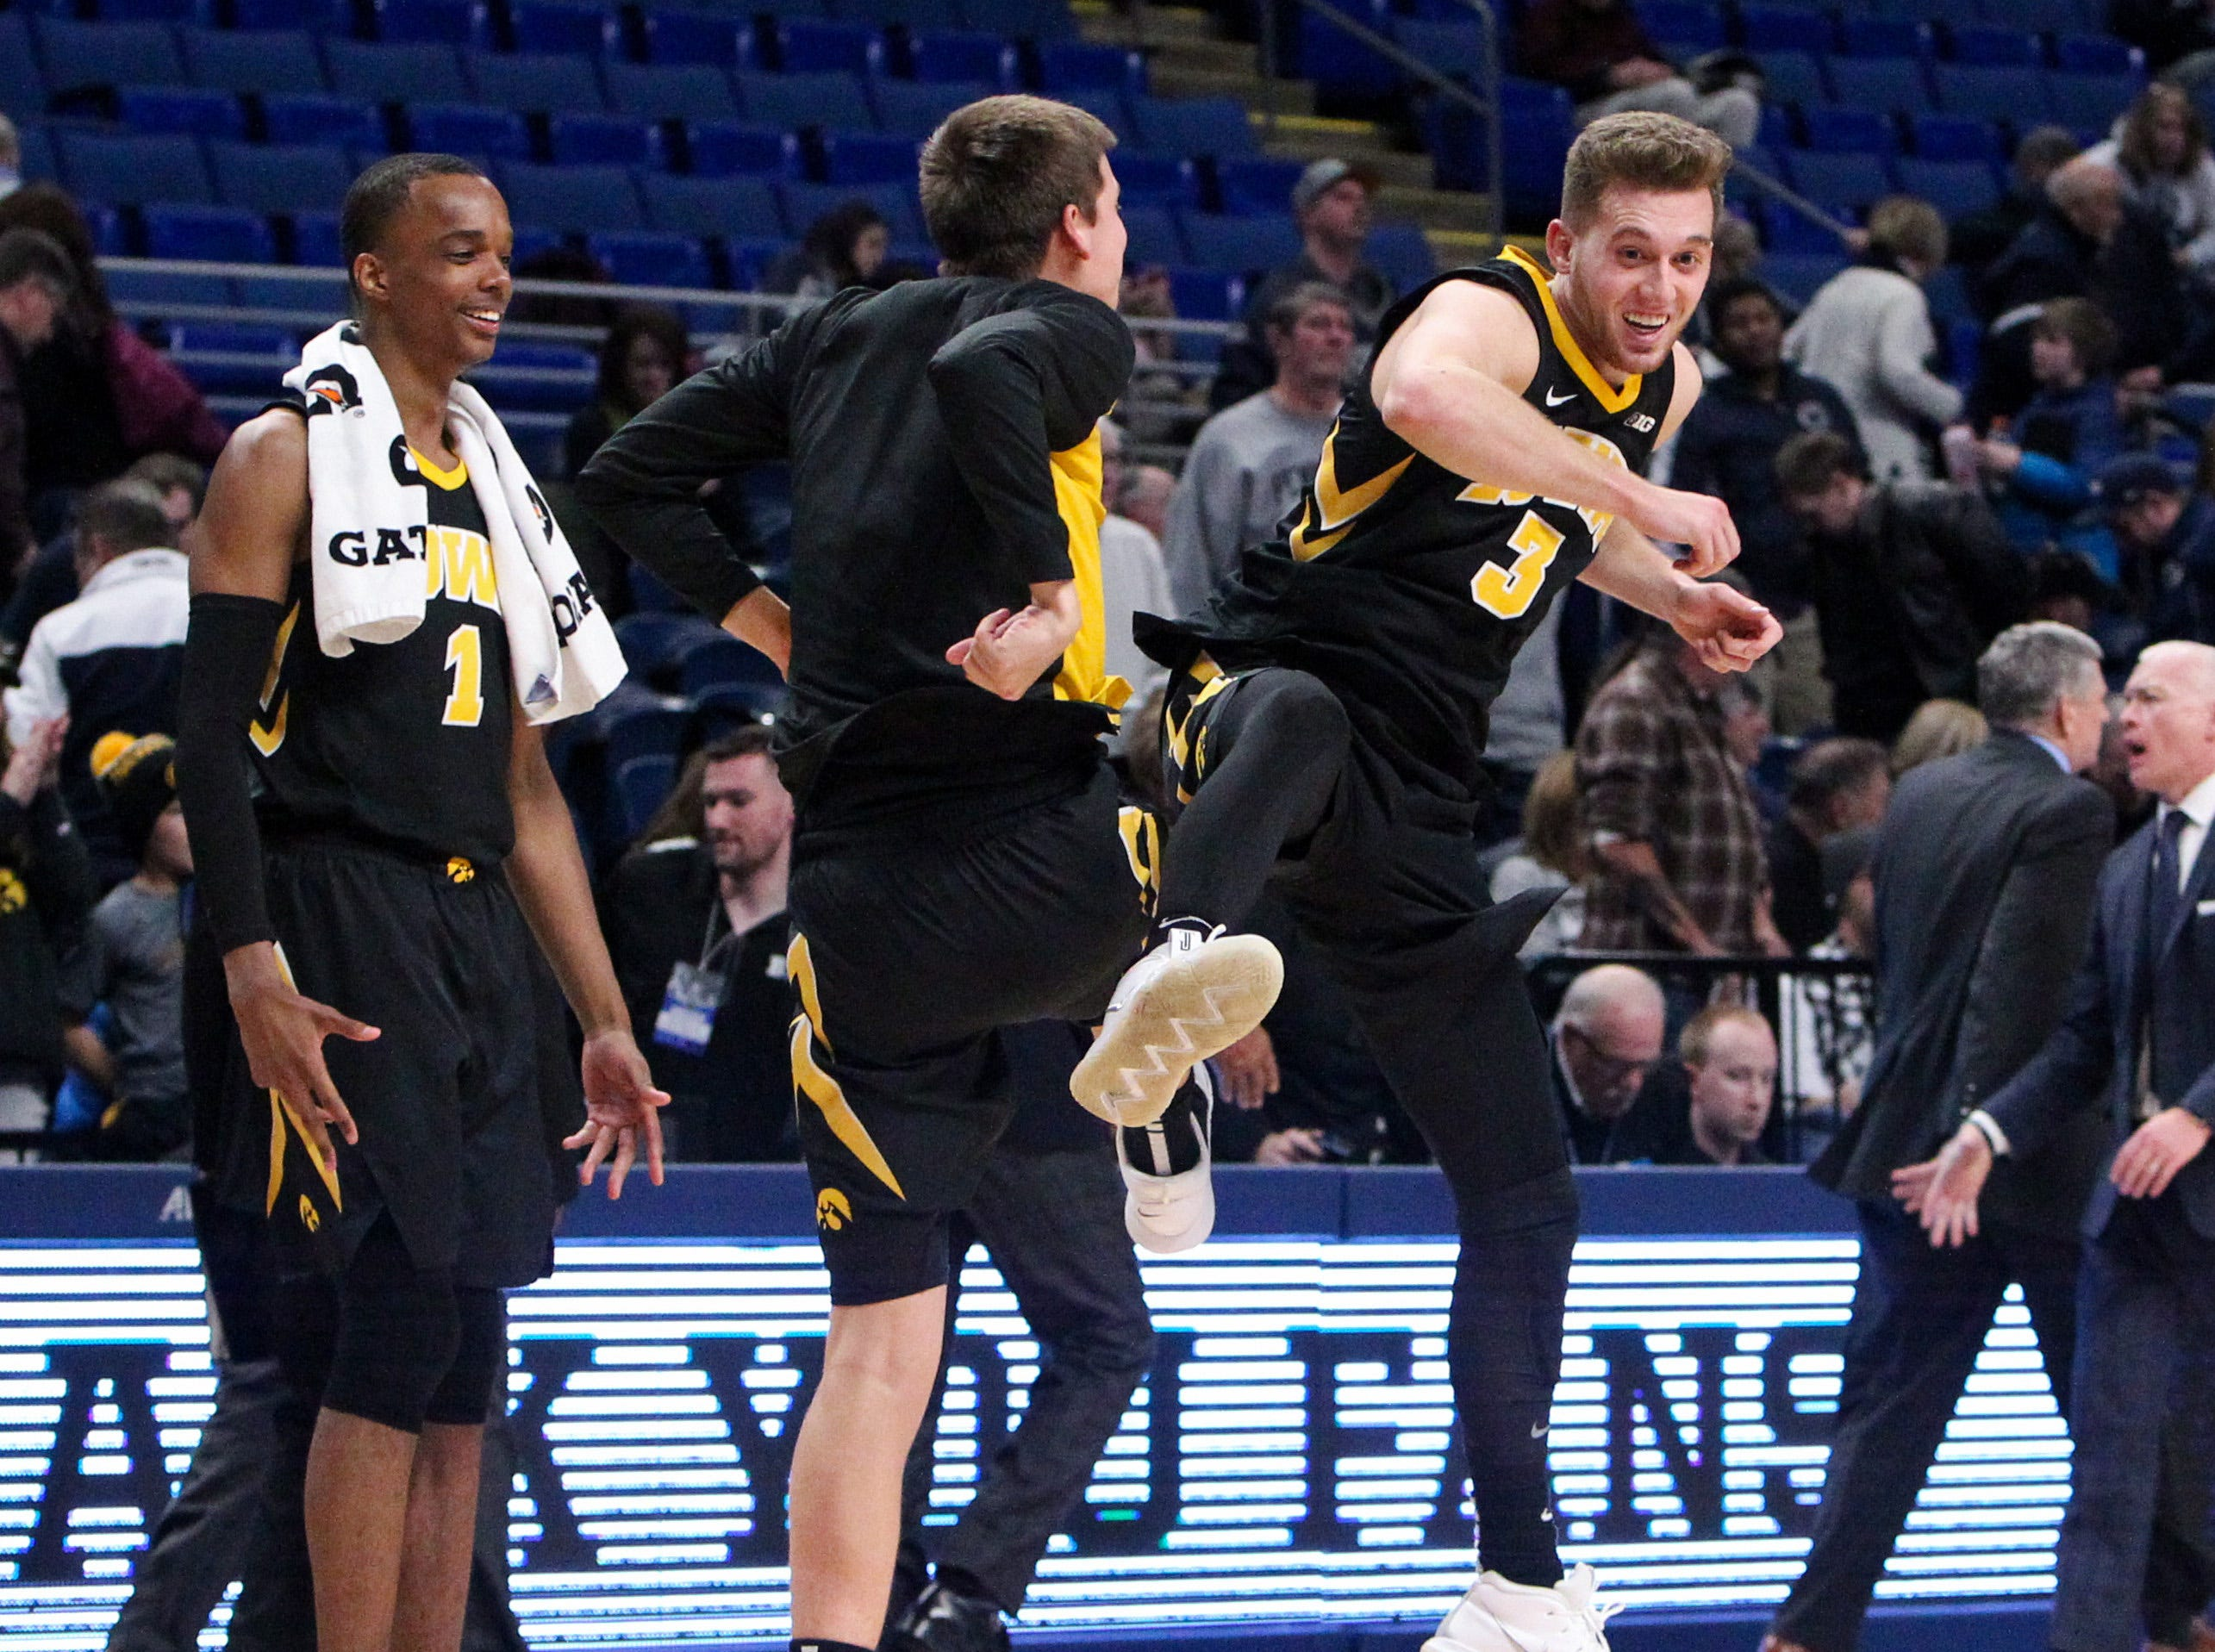 Jan 16, 2019; University Park, PA, USA; Iowa Hawkeyes guard Jordan Bohannon (3) celebrates with Austin Ash following the game against the Penn State Nittany Lions at Bryce Jordan Center. Iowa defeated Penn State 89-82. Mandatory Credit: Matthew O'Haren-USA TODAY Sports